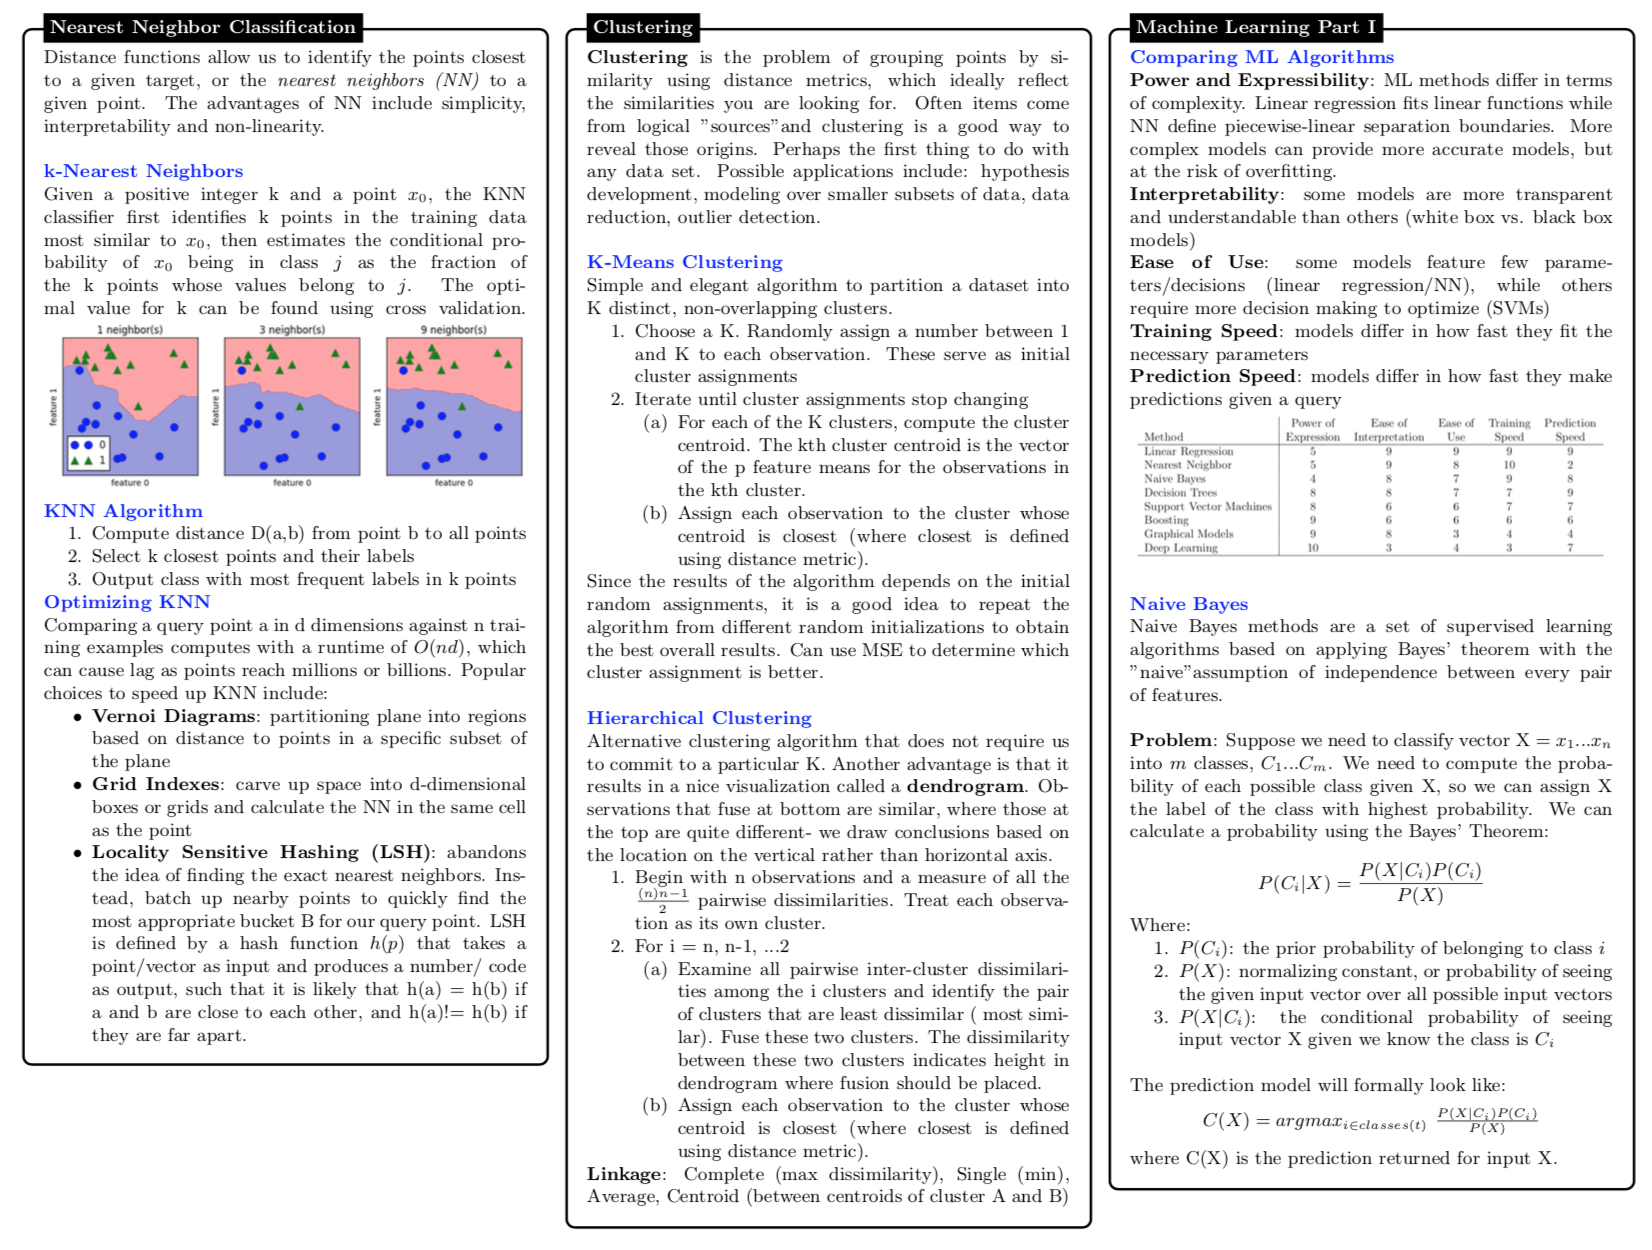 Data Science Cheat Sheets